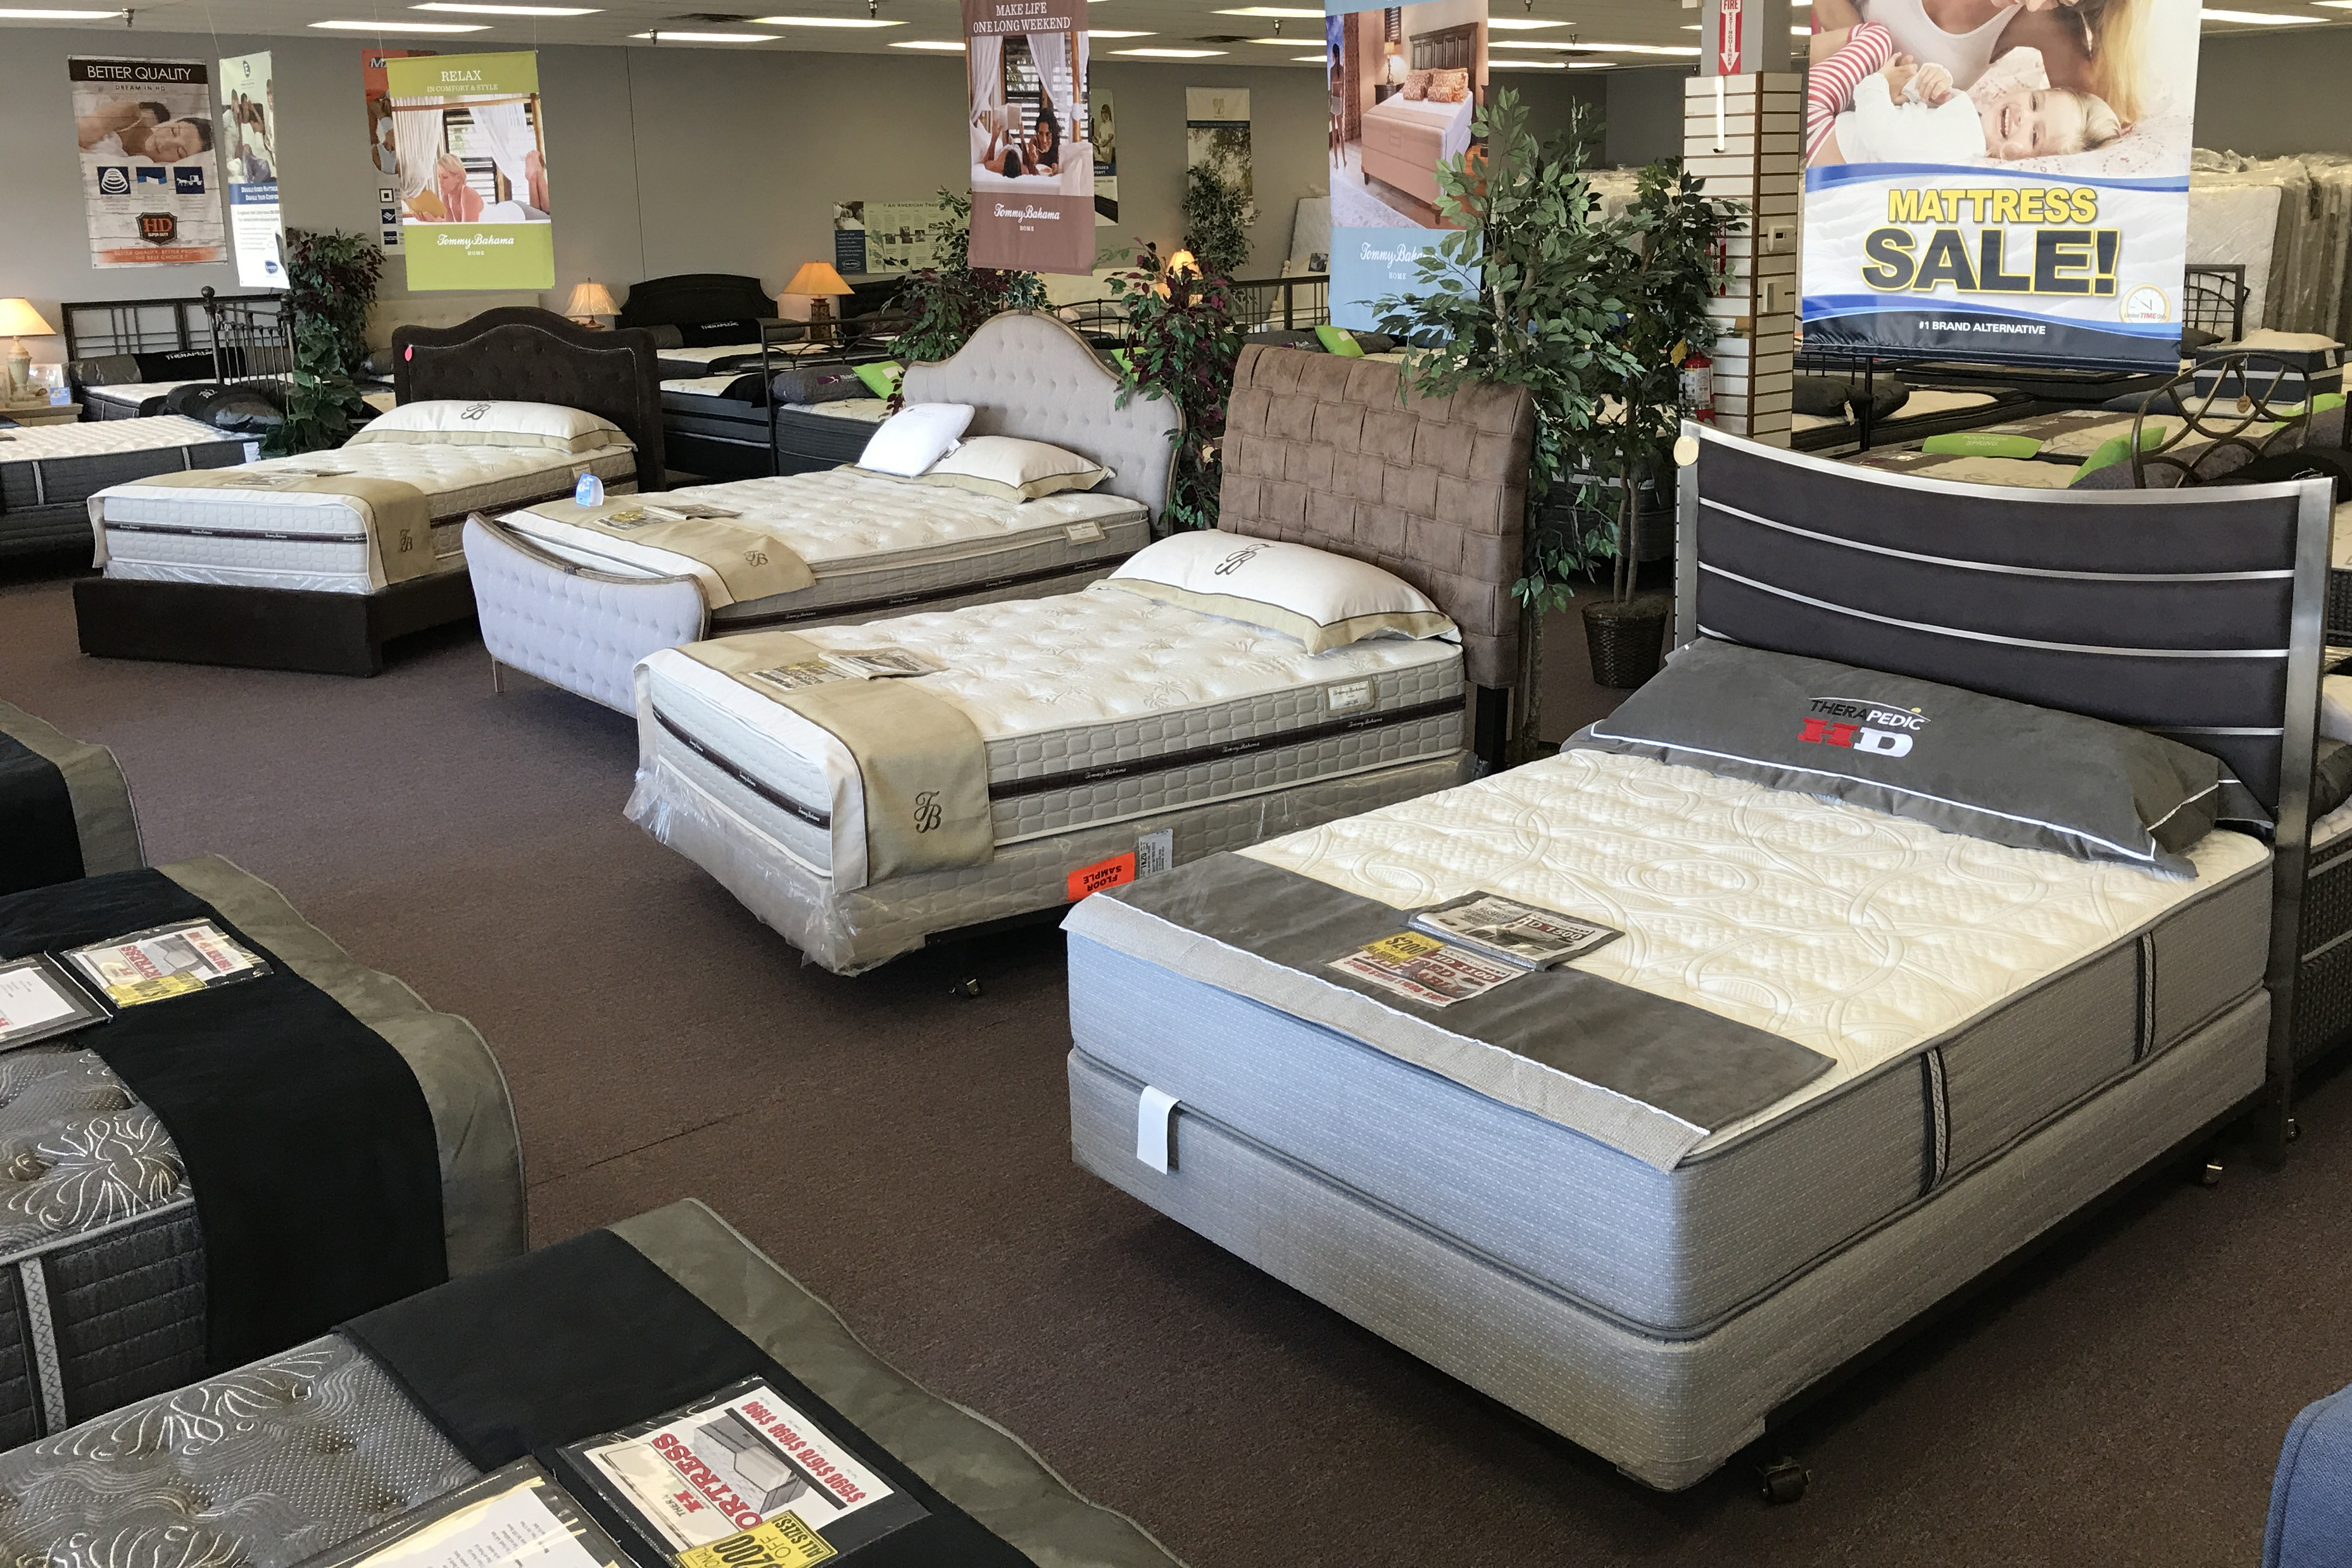 cleveland furniture mattress s the sheely pennsylvania youngstown pittsburgh store ohio appliance